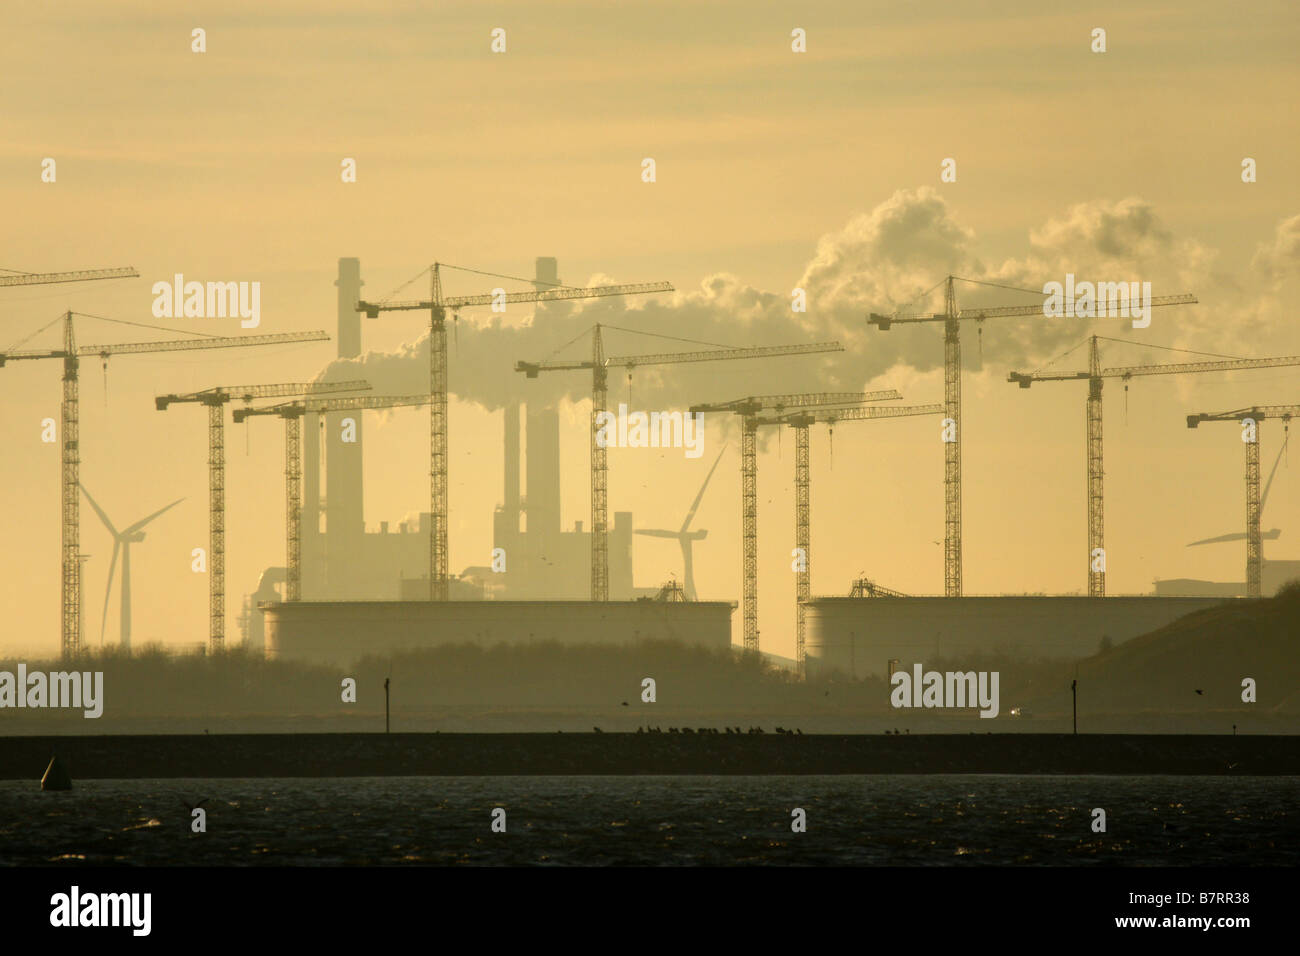 Many cranes and chimney pouring plumes smoke silhouette evening sky horizon Rotterdam Europort Europoort Netherlands - Stock Image